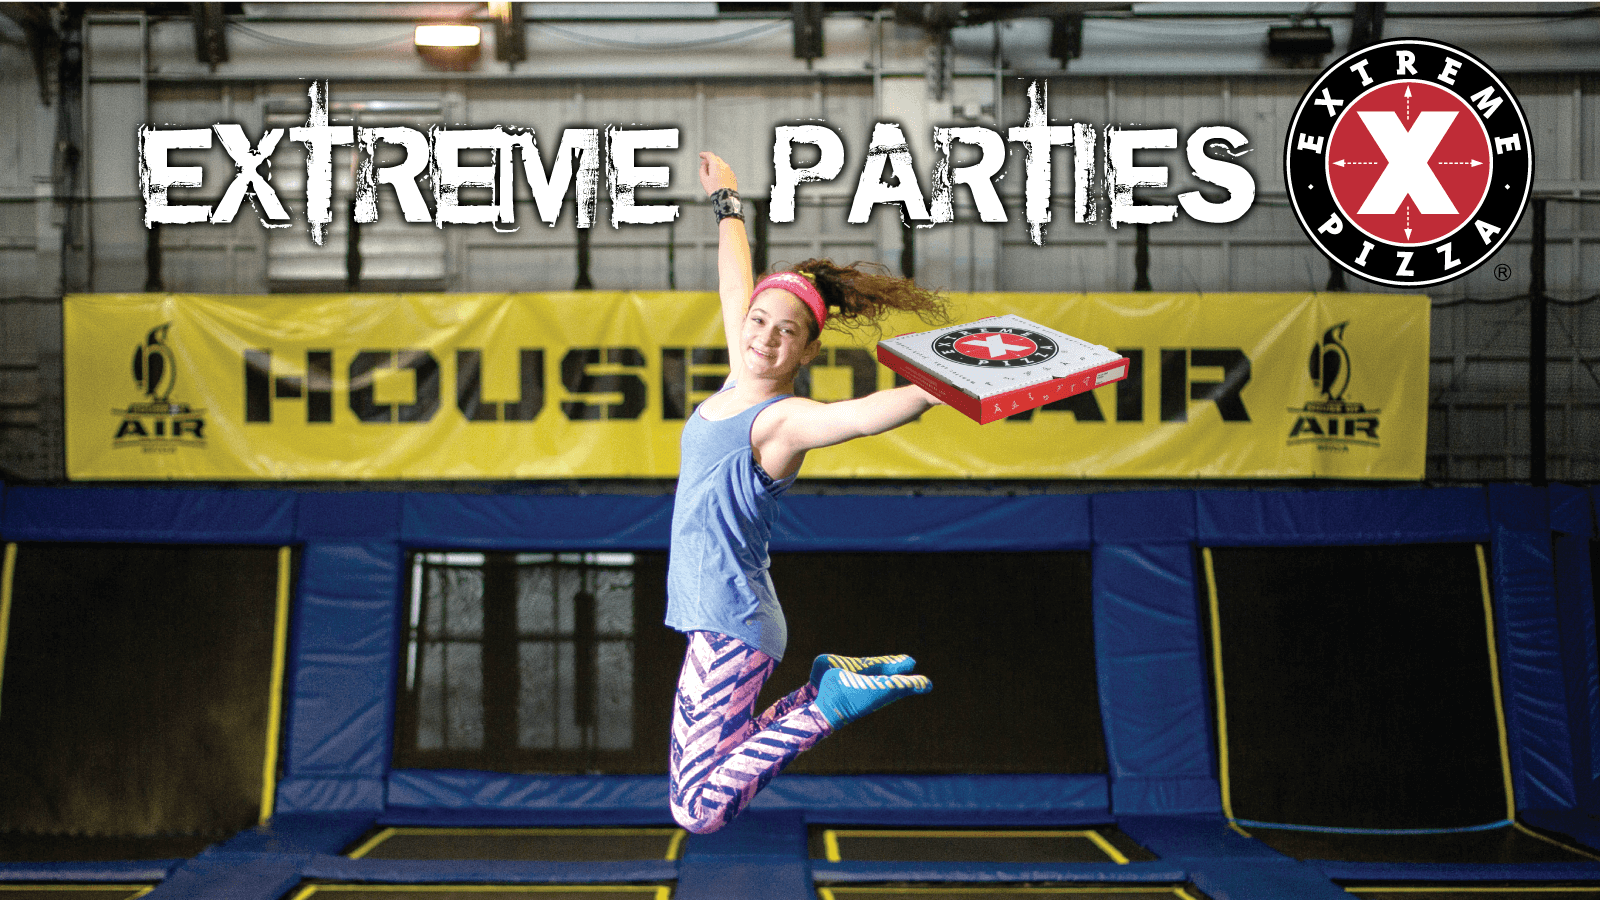 Parties at House of Air are Extreme with Extreme Pizza